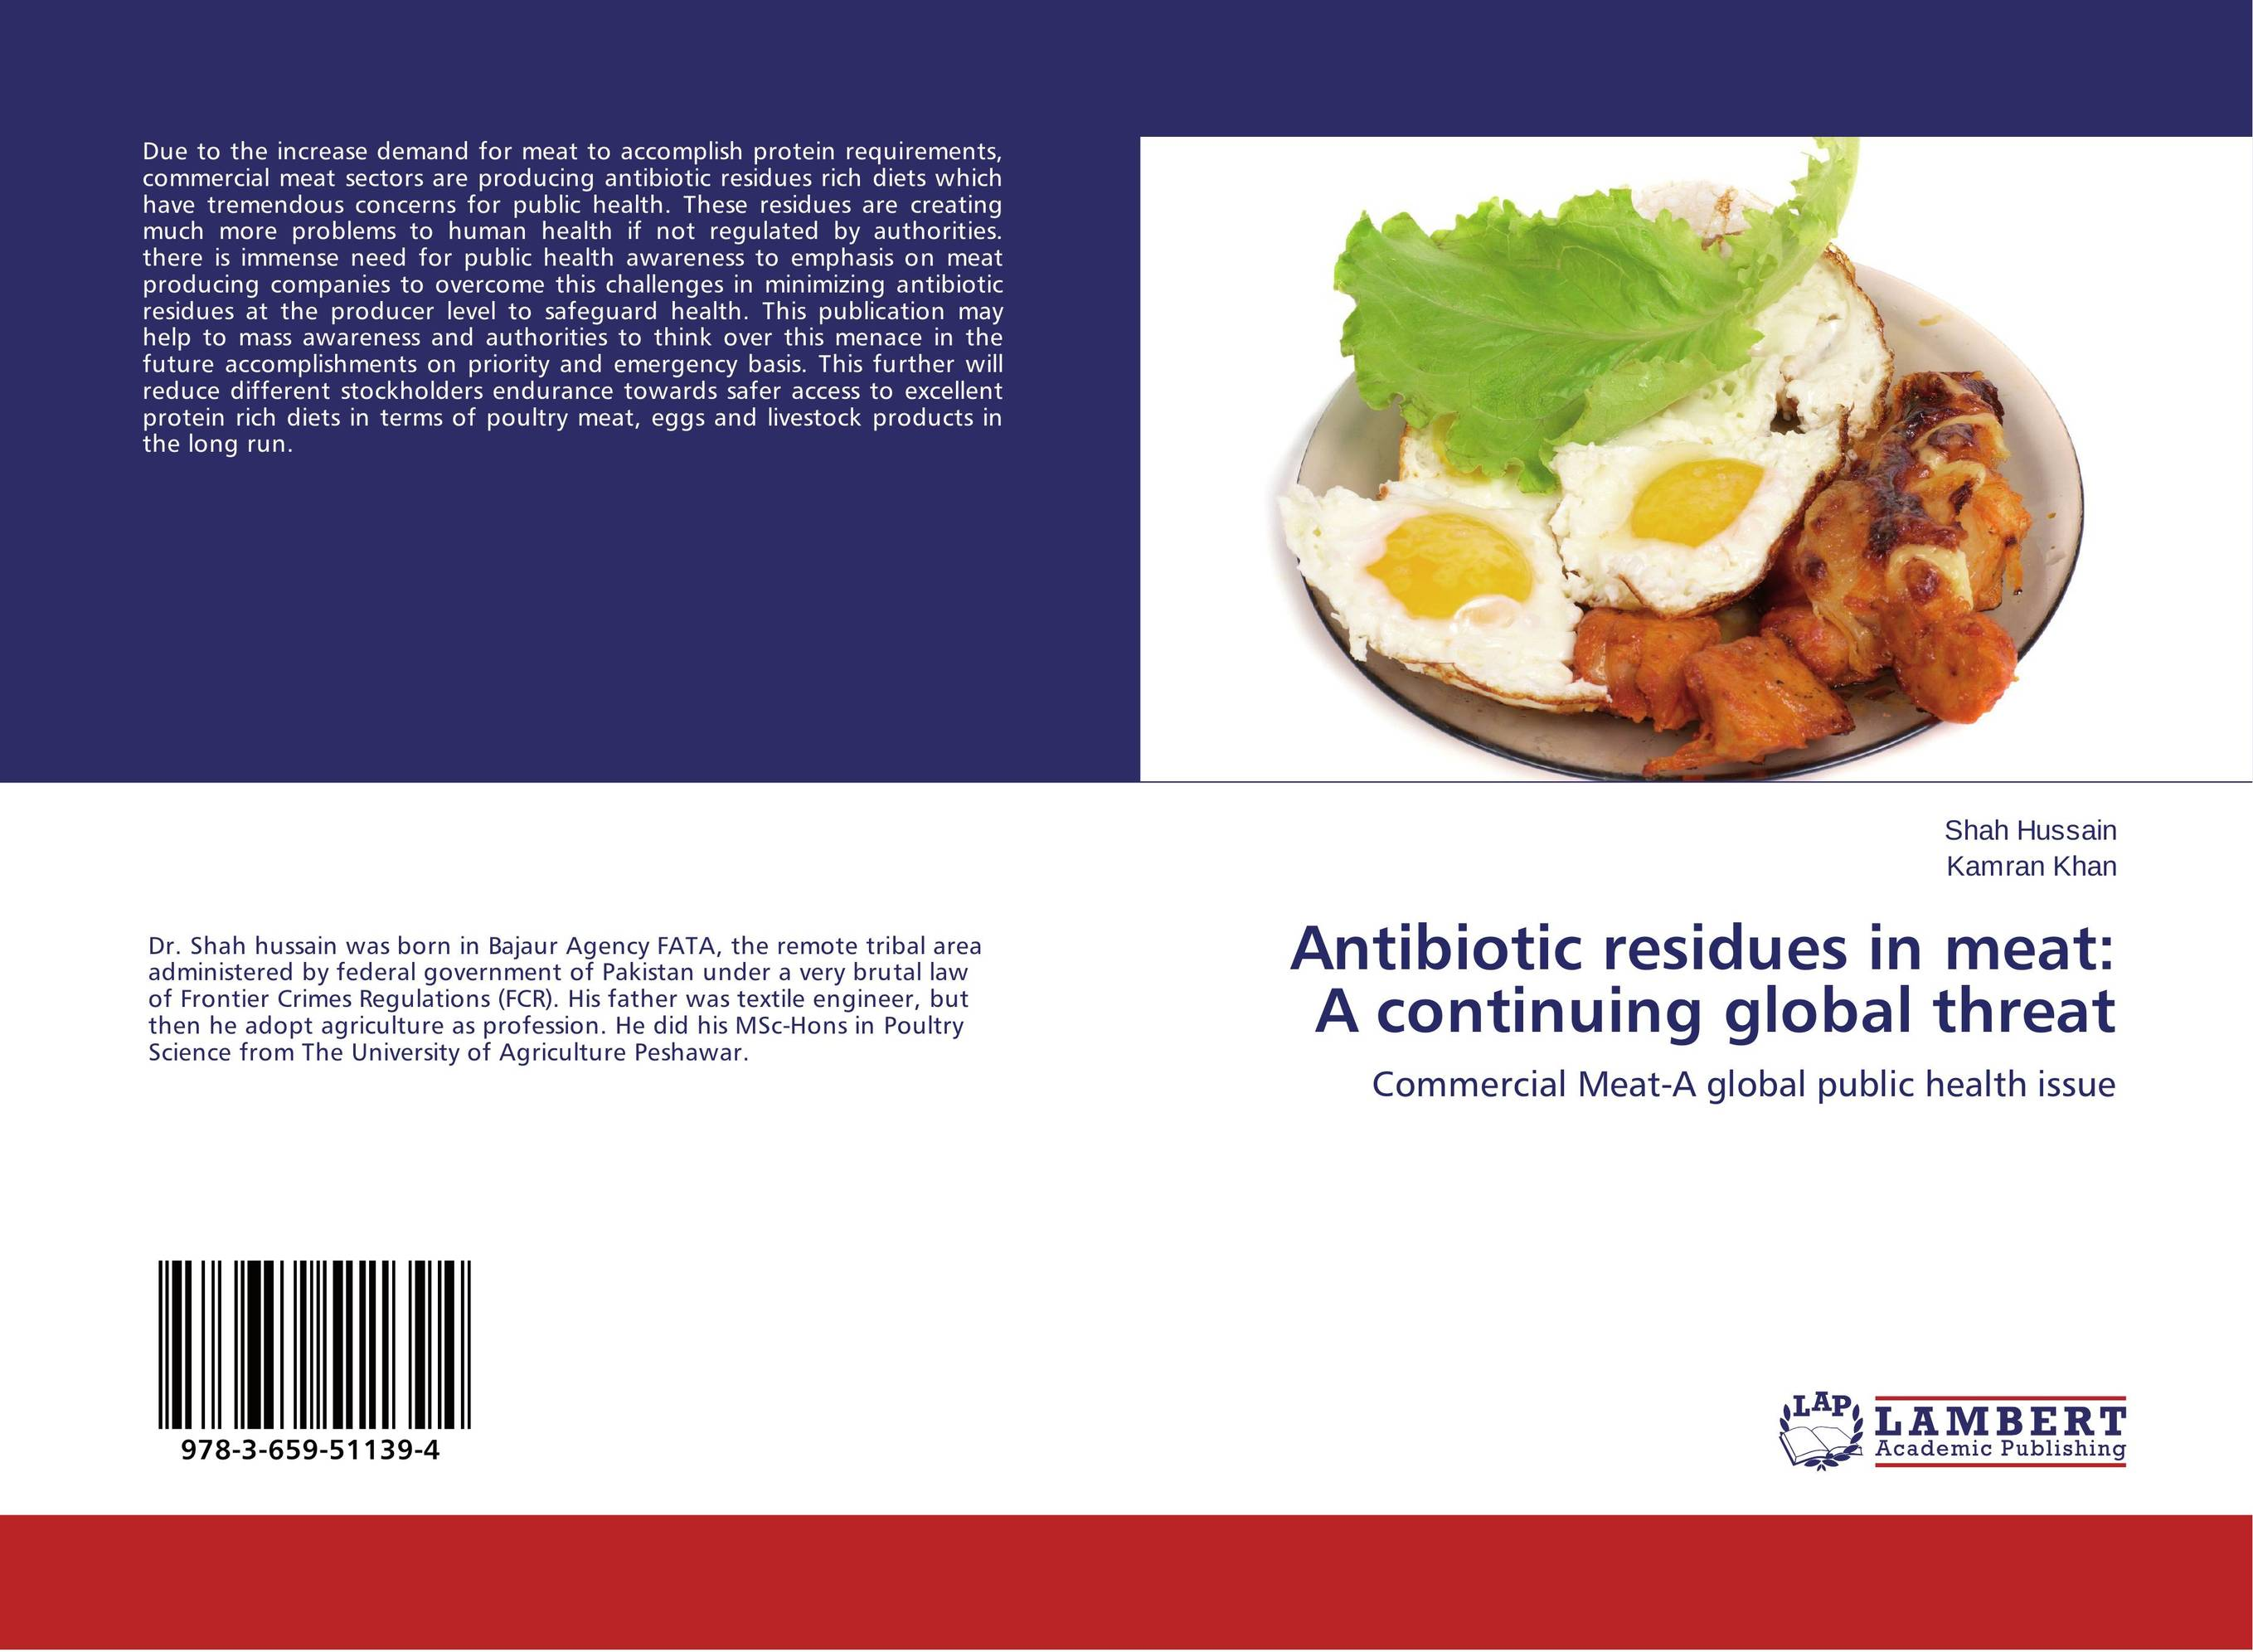 Antibiotic residues in meat: A continuing global threat health awareness among continuing education workers